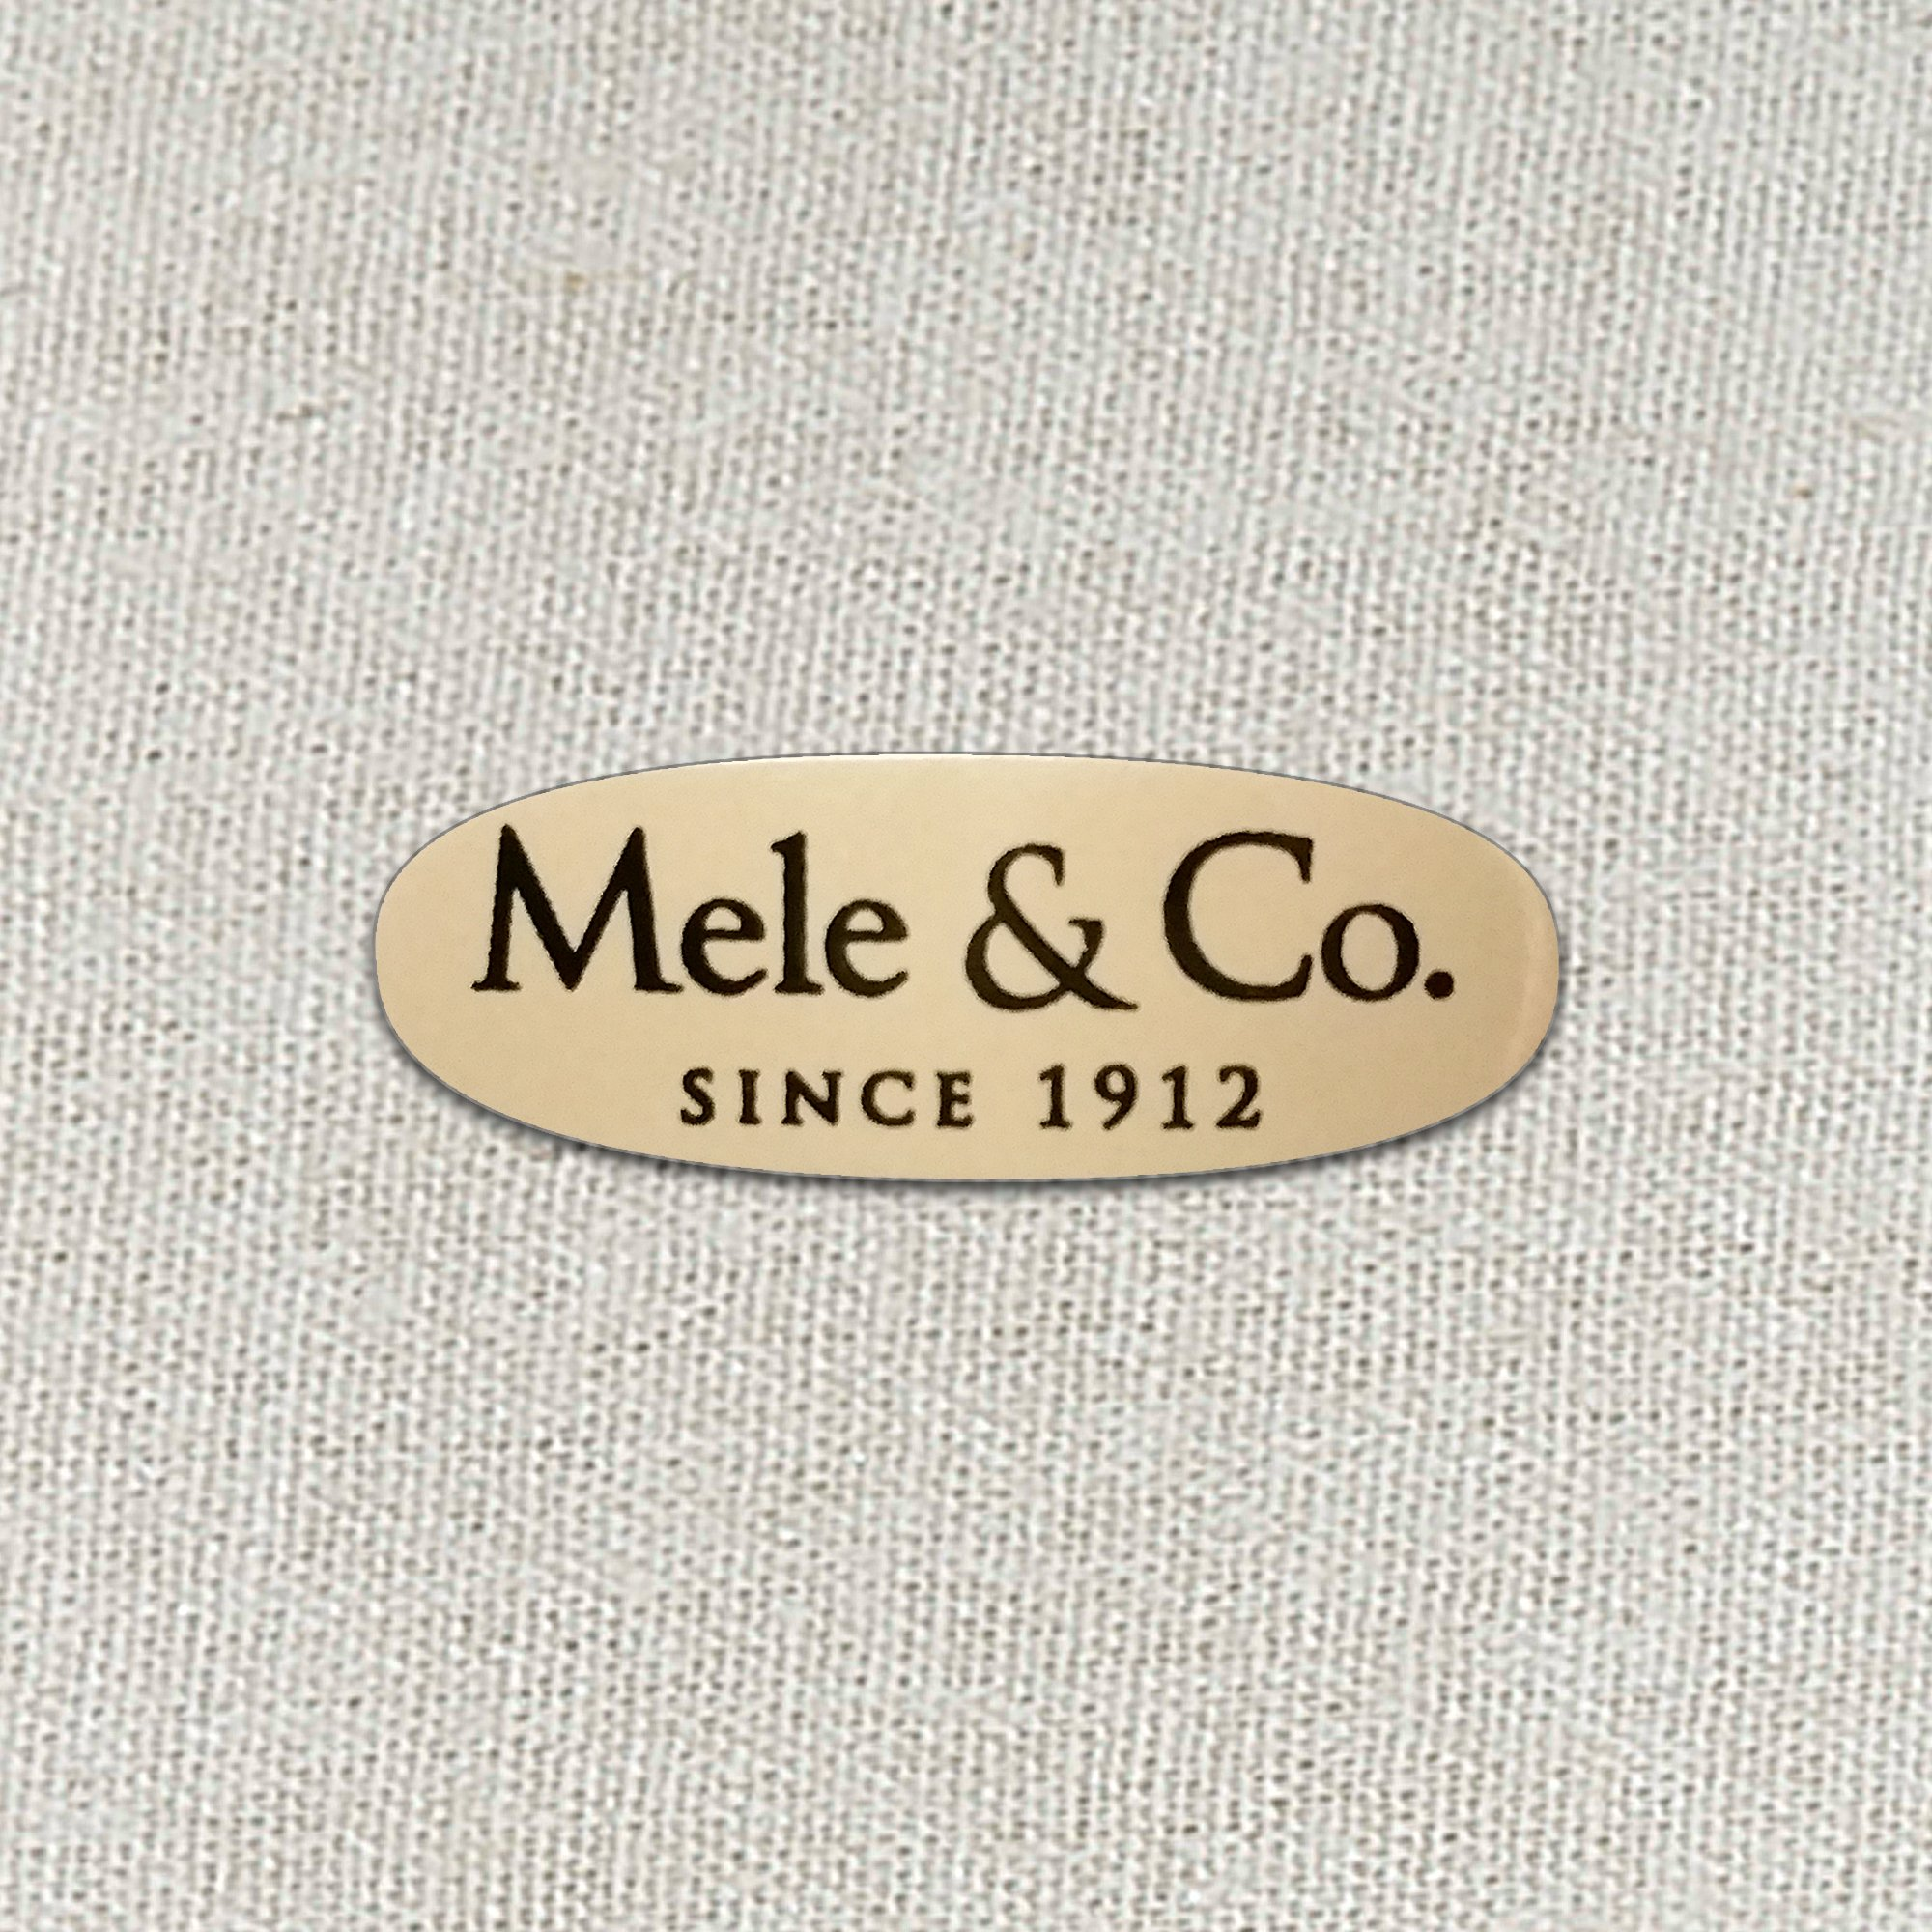 Mele & Co. Misty Glass Top Wooden Jewelry Box (Oceanside Grey Finish) by Mele & Co. (Image #9)